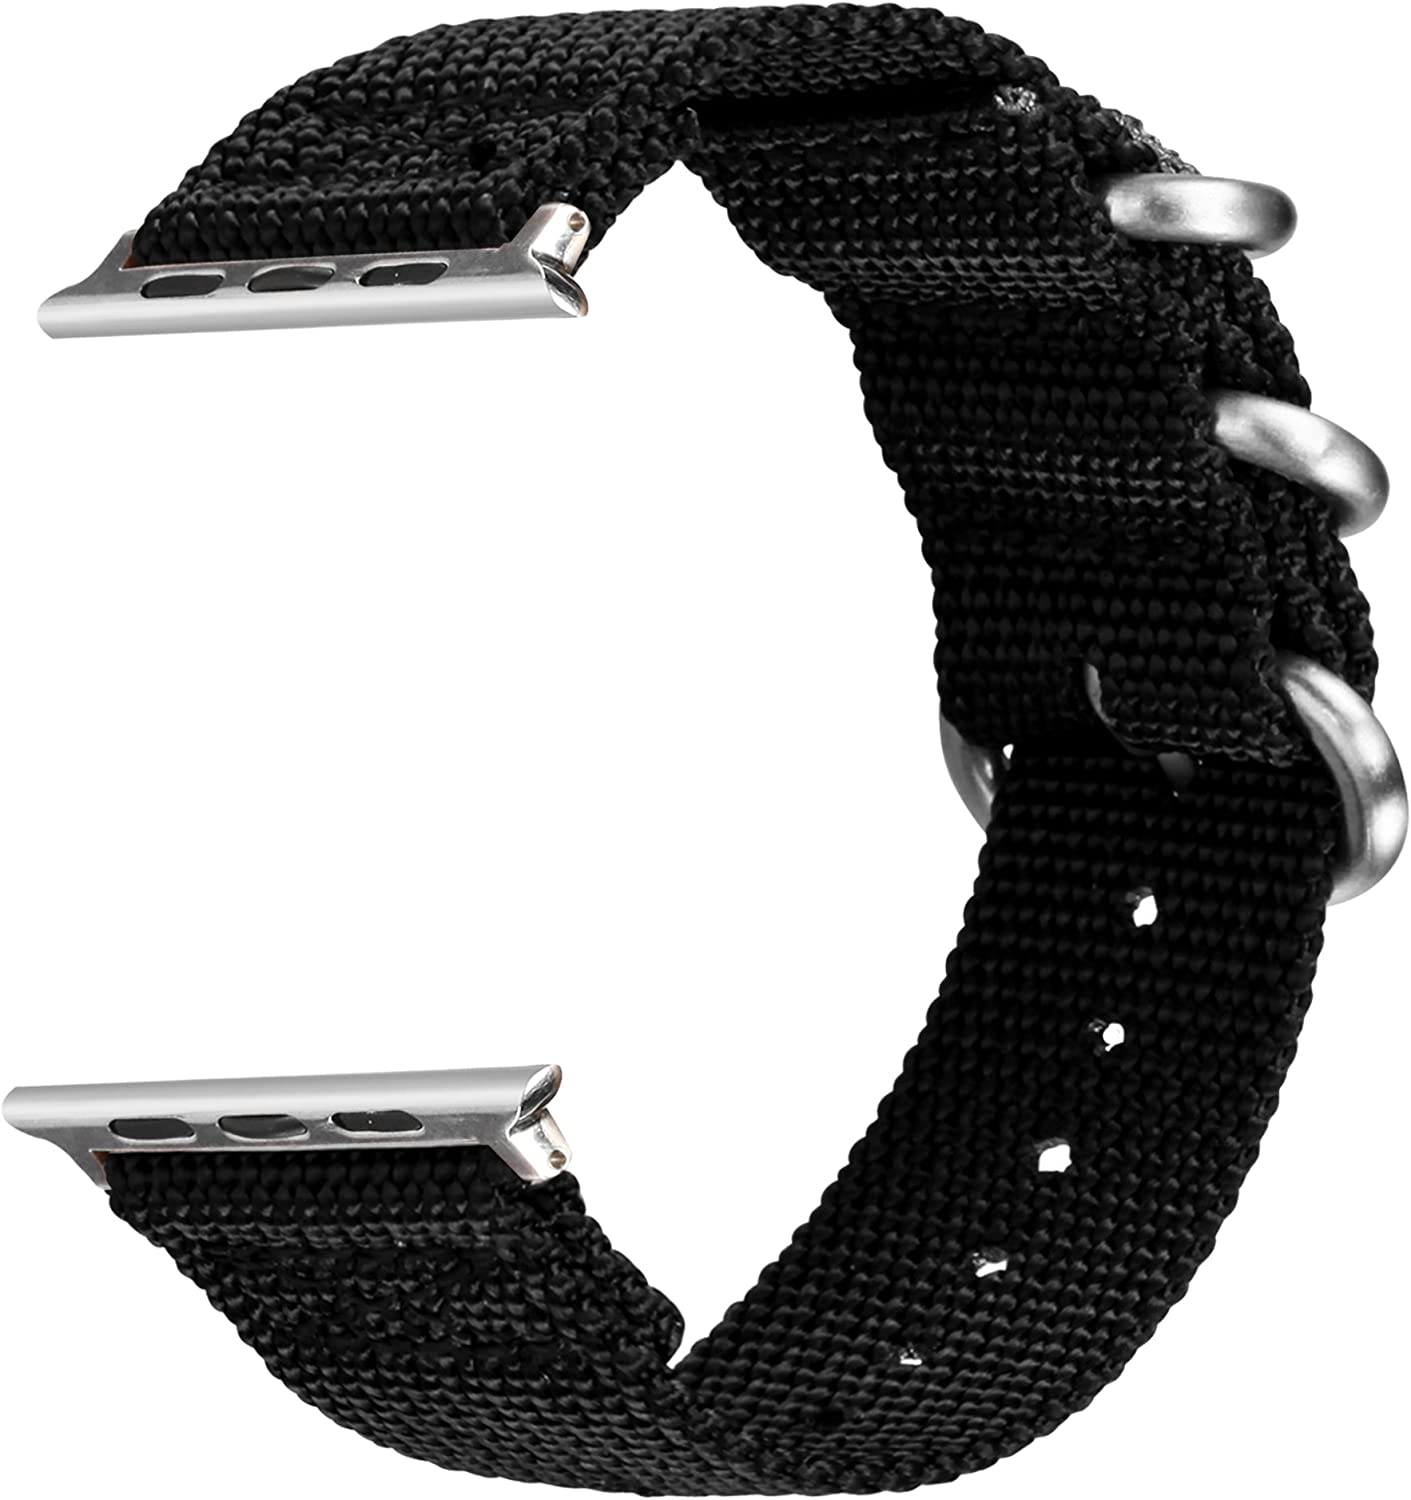 VIGOSS Bands for Apple Watch Band 38mm 40mm Men Women, Woven Nylon NATO iWatch Band Soft Replacement Strap with Metal Buckle Bracelet for Apple Watch Series 4 3 2 1 Sport (Black,38mm/40mm)